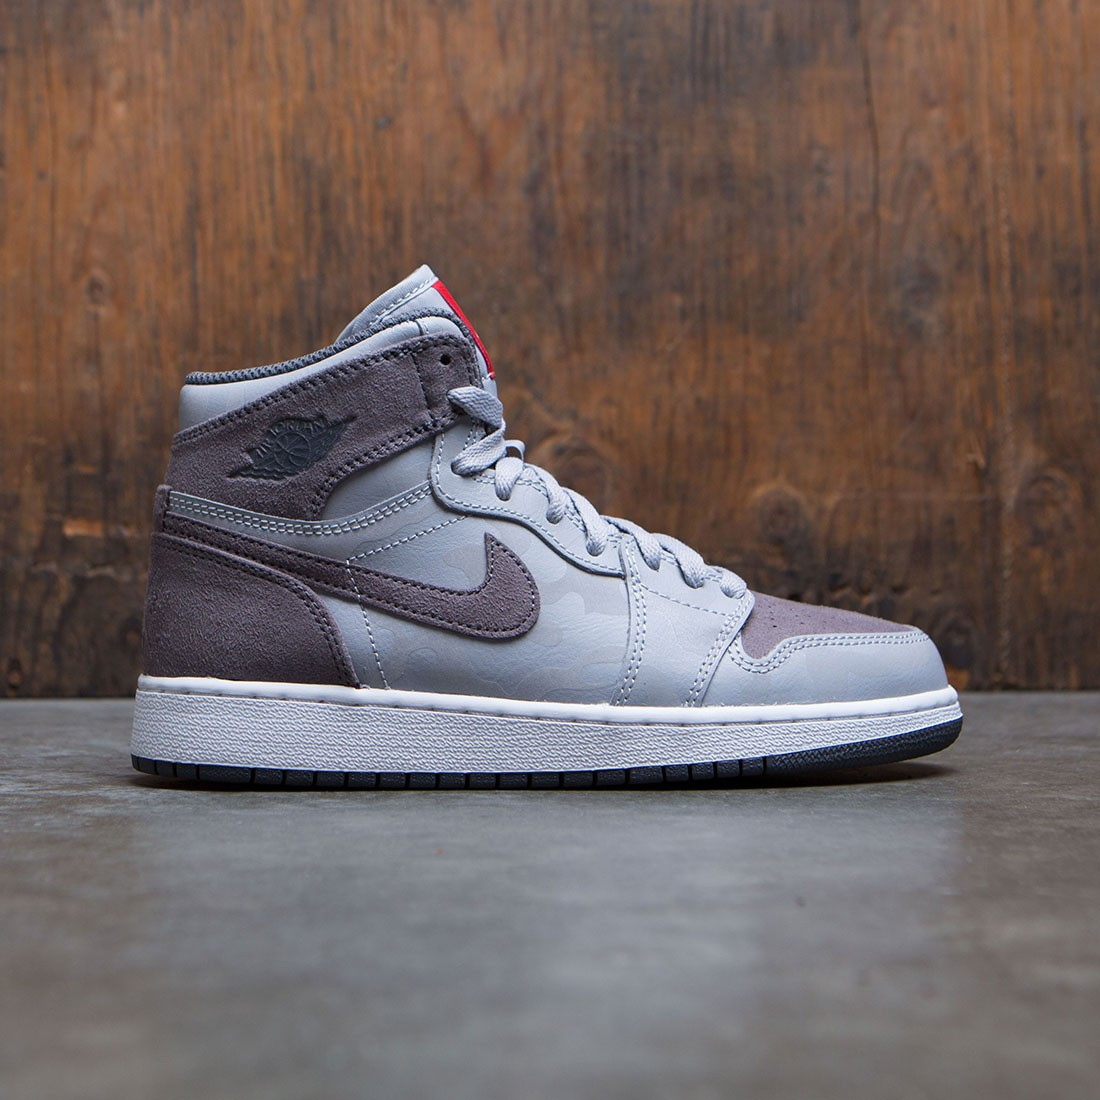 new arrivals 00001 31bd6 jordan big kids air jordan 1 retro high premium gs gray wolf grey dark grey  white university red